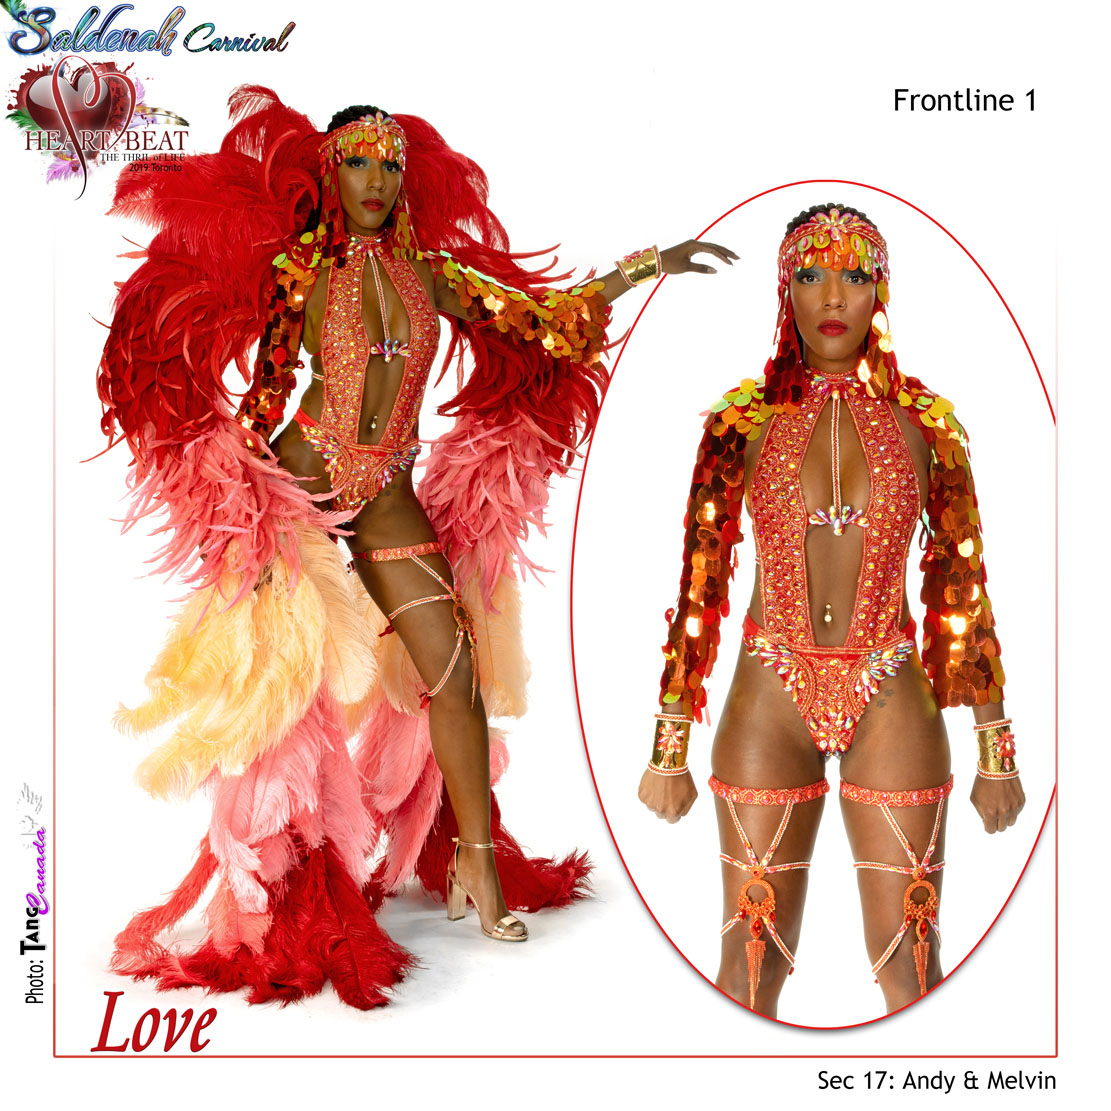 Saldenah Carnival Section 17 L'Amour